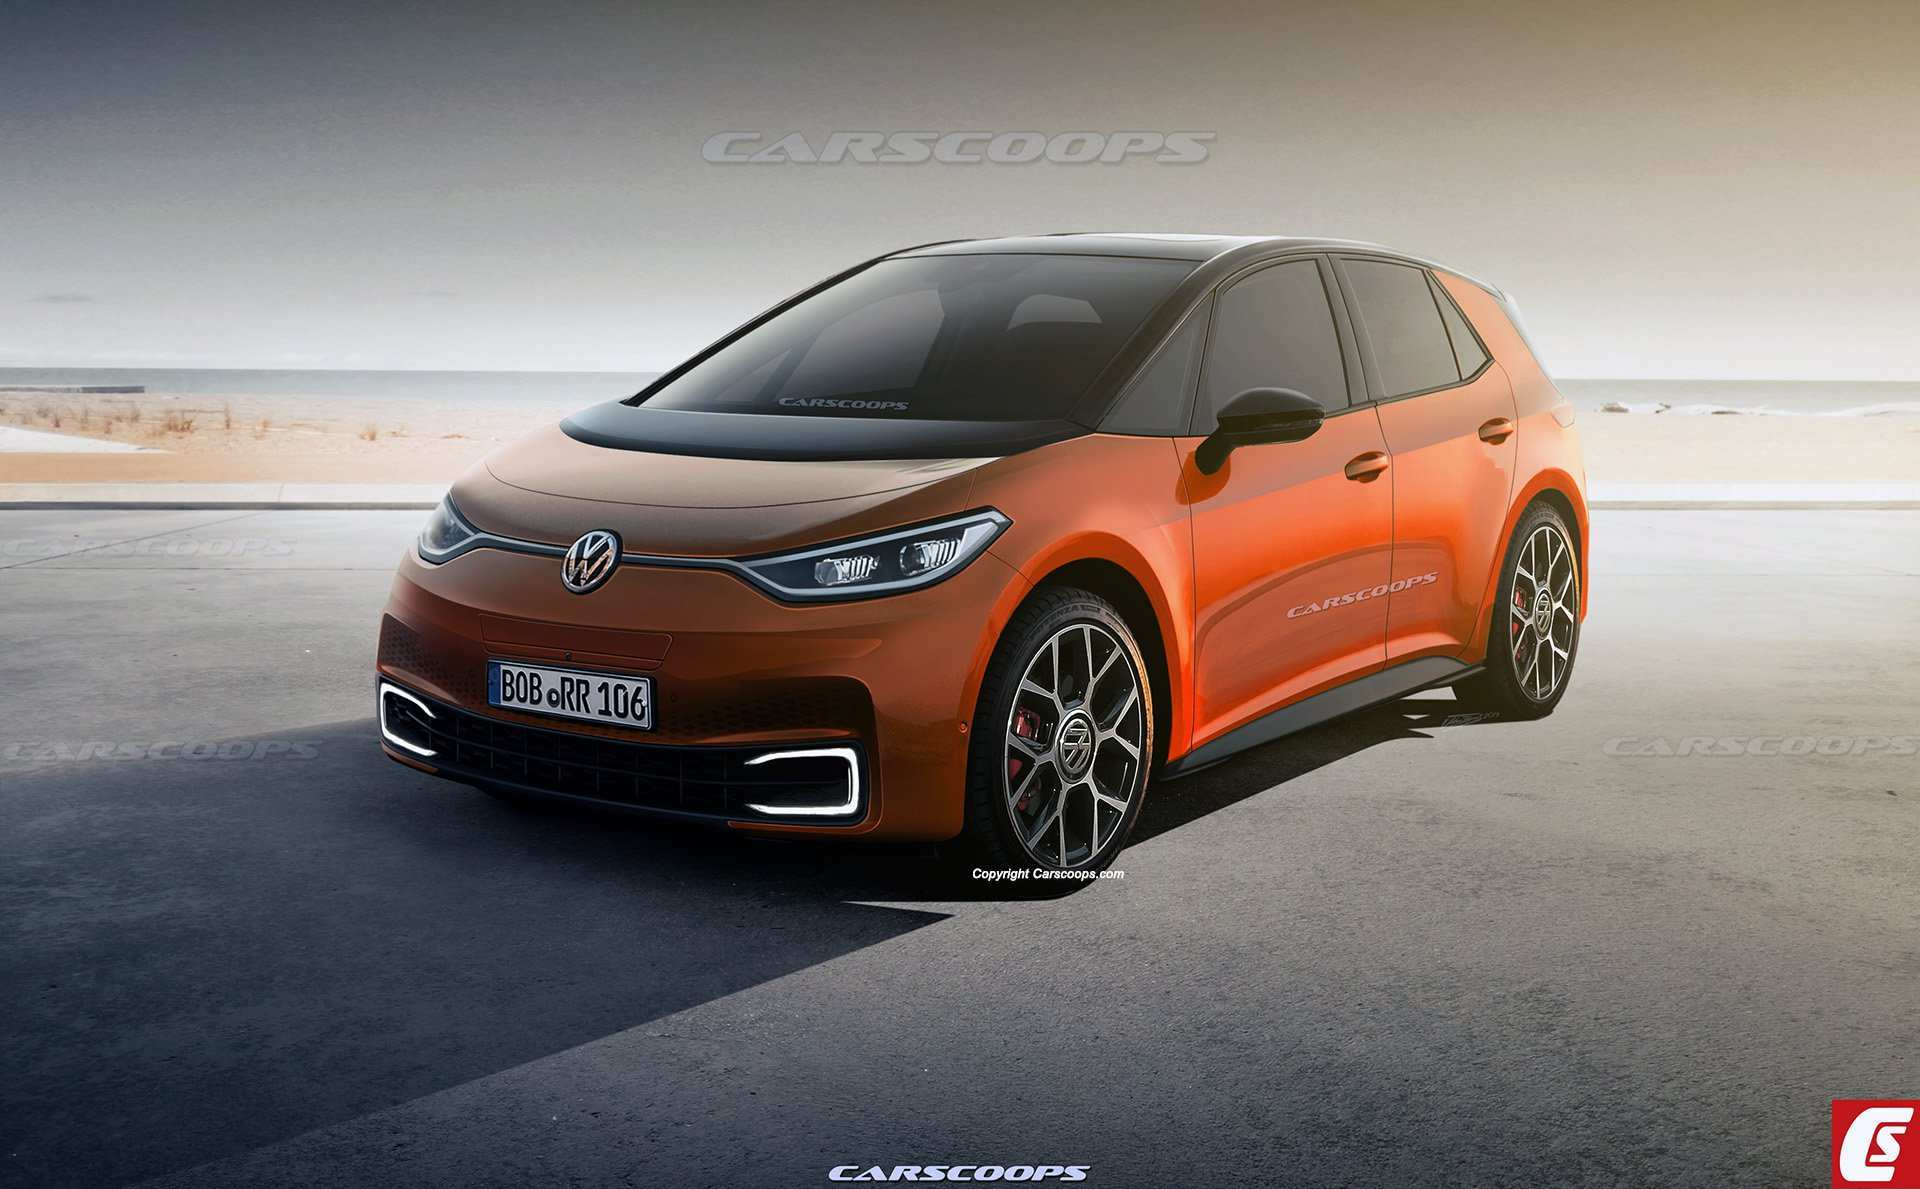 76 All New Volkswagen Electric Car 2020 Configurations